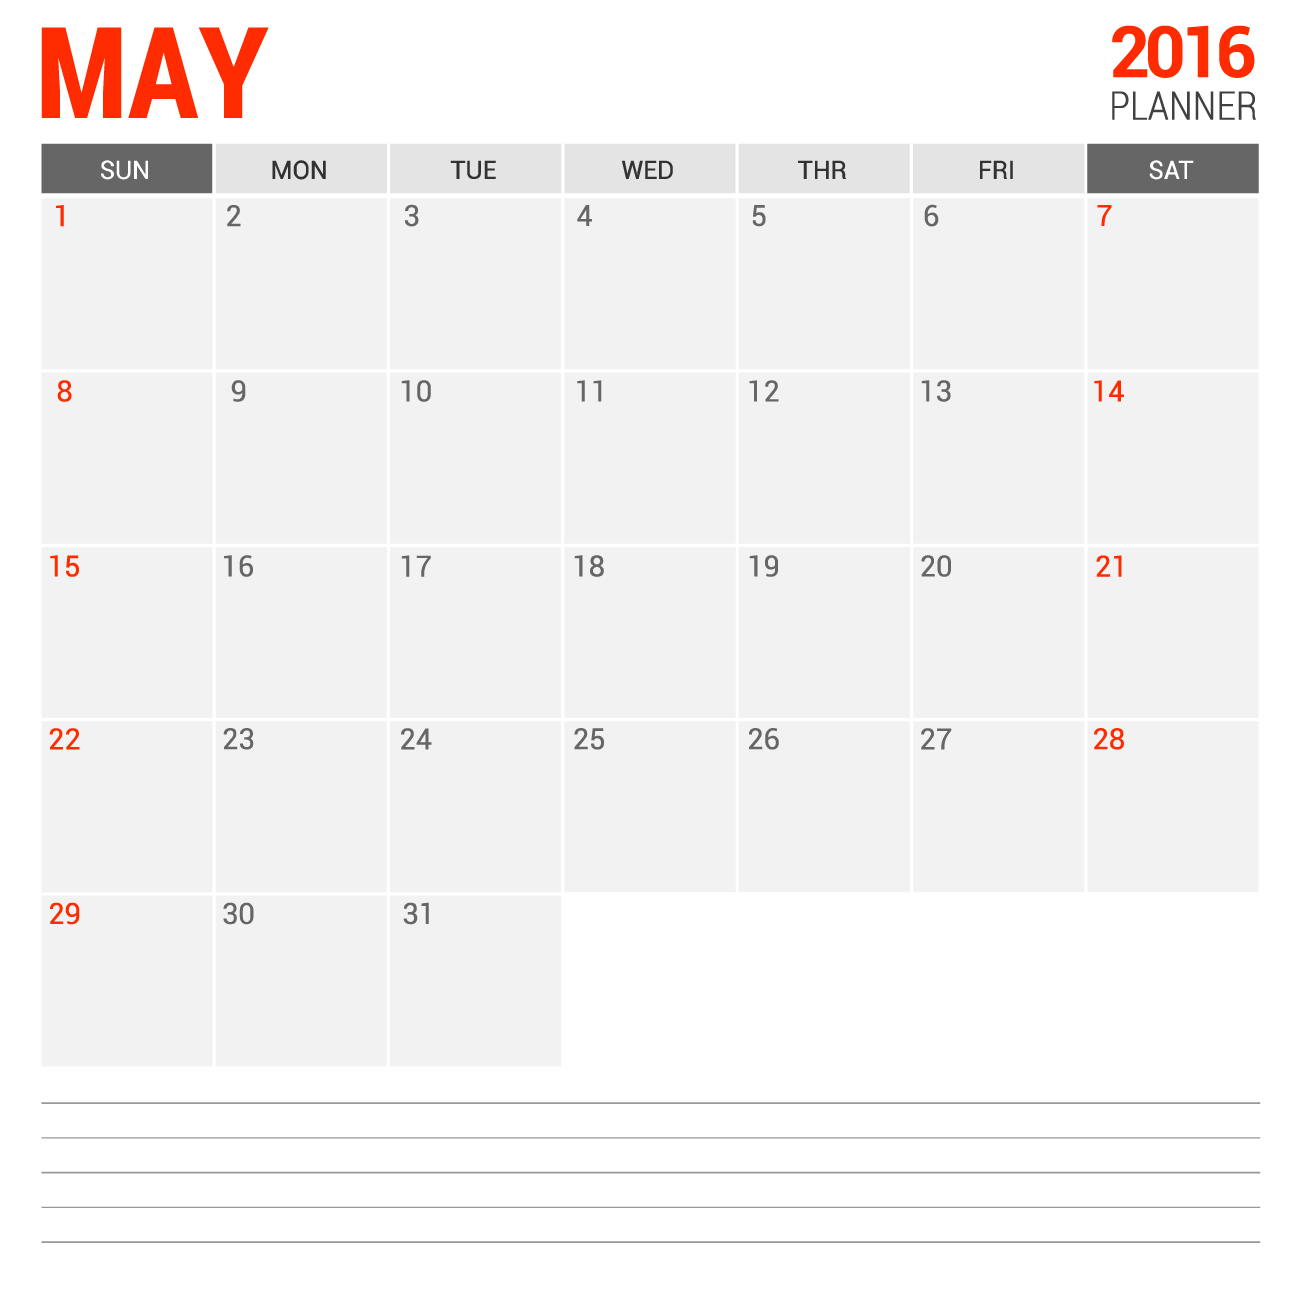 blank calendar May 2016 blank calendar pages blank calendar templates a blank calendar for May 2016 blank calendar by days ez printable calendar the printable calendar blank calendar on one page blank calendar 30 days blank calendar 31 days blank calendar 4 months per page blank 4 month calendar 2016